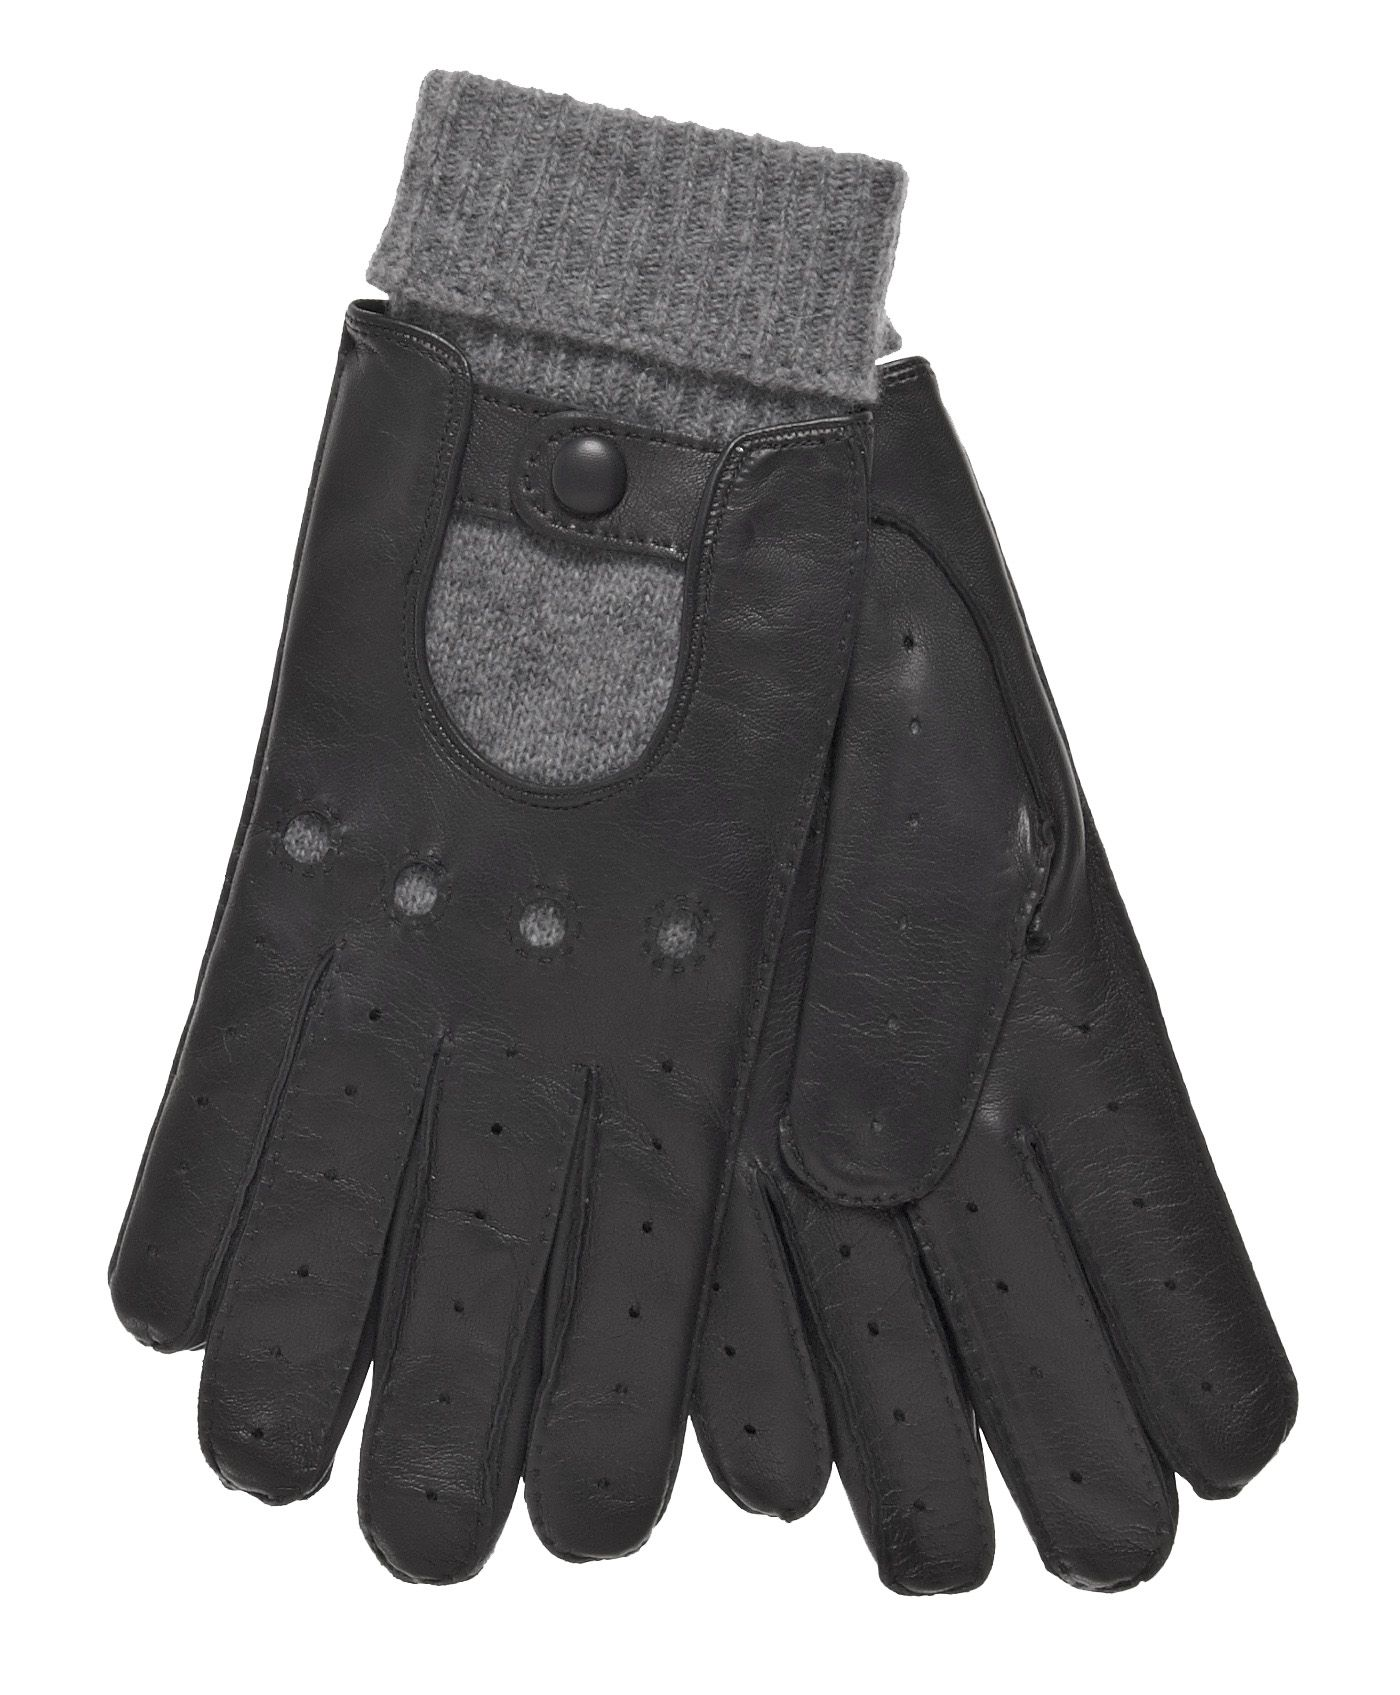 Shorty leather driving gloves fingerless - Men S Winter Leather Driving Gloves With Cashmere Lining By Fratelli Orsini Free Usa Shipping